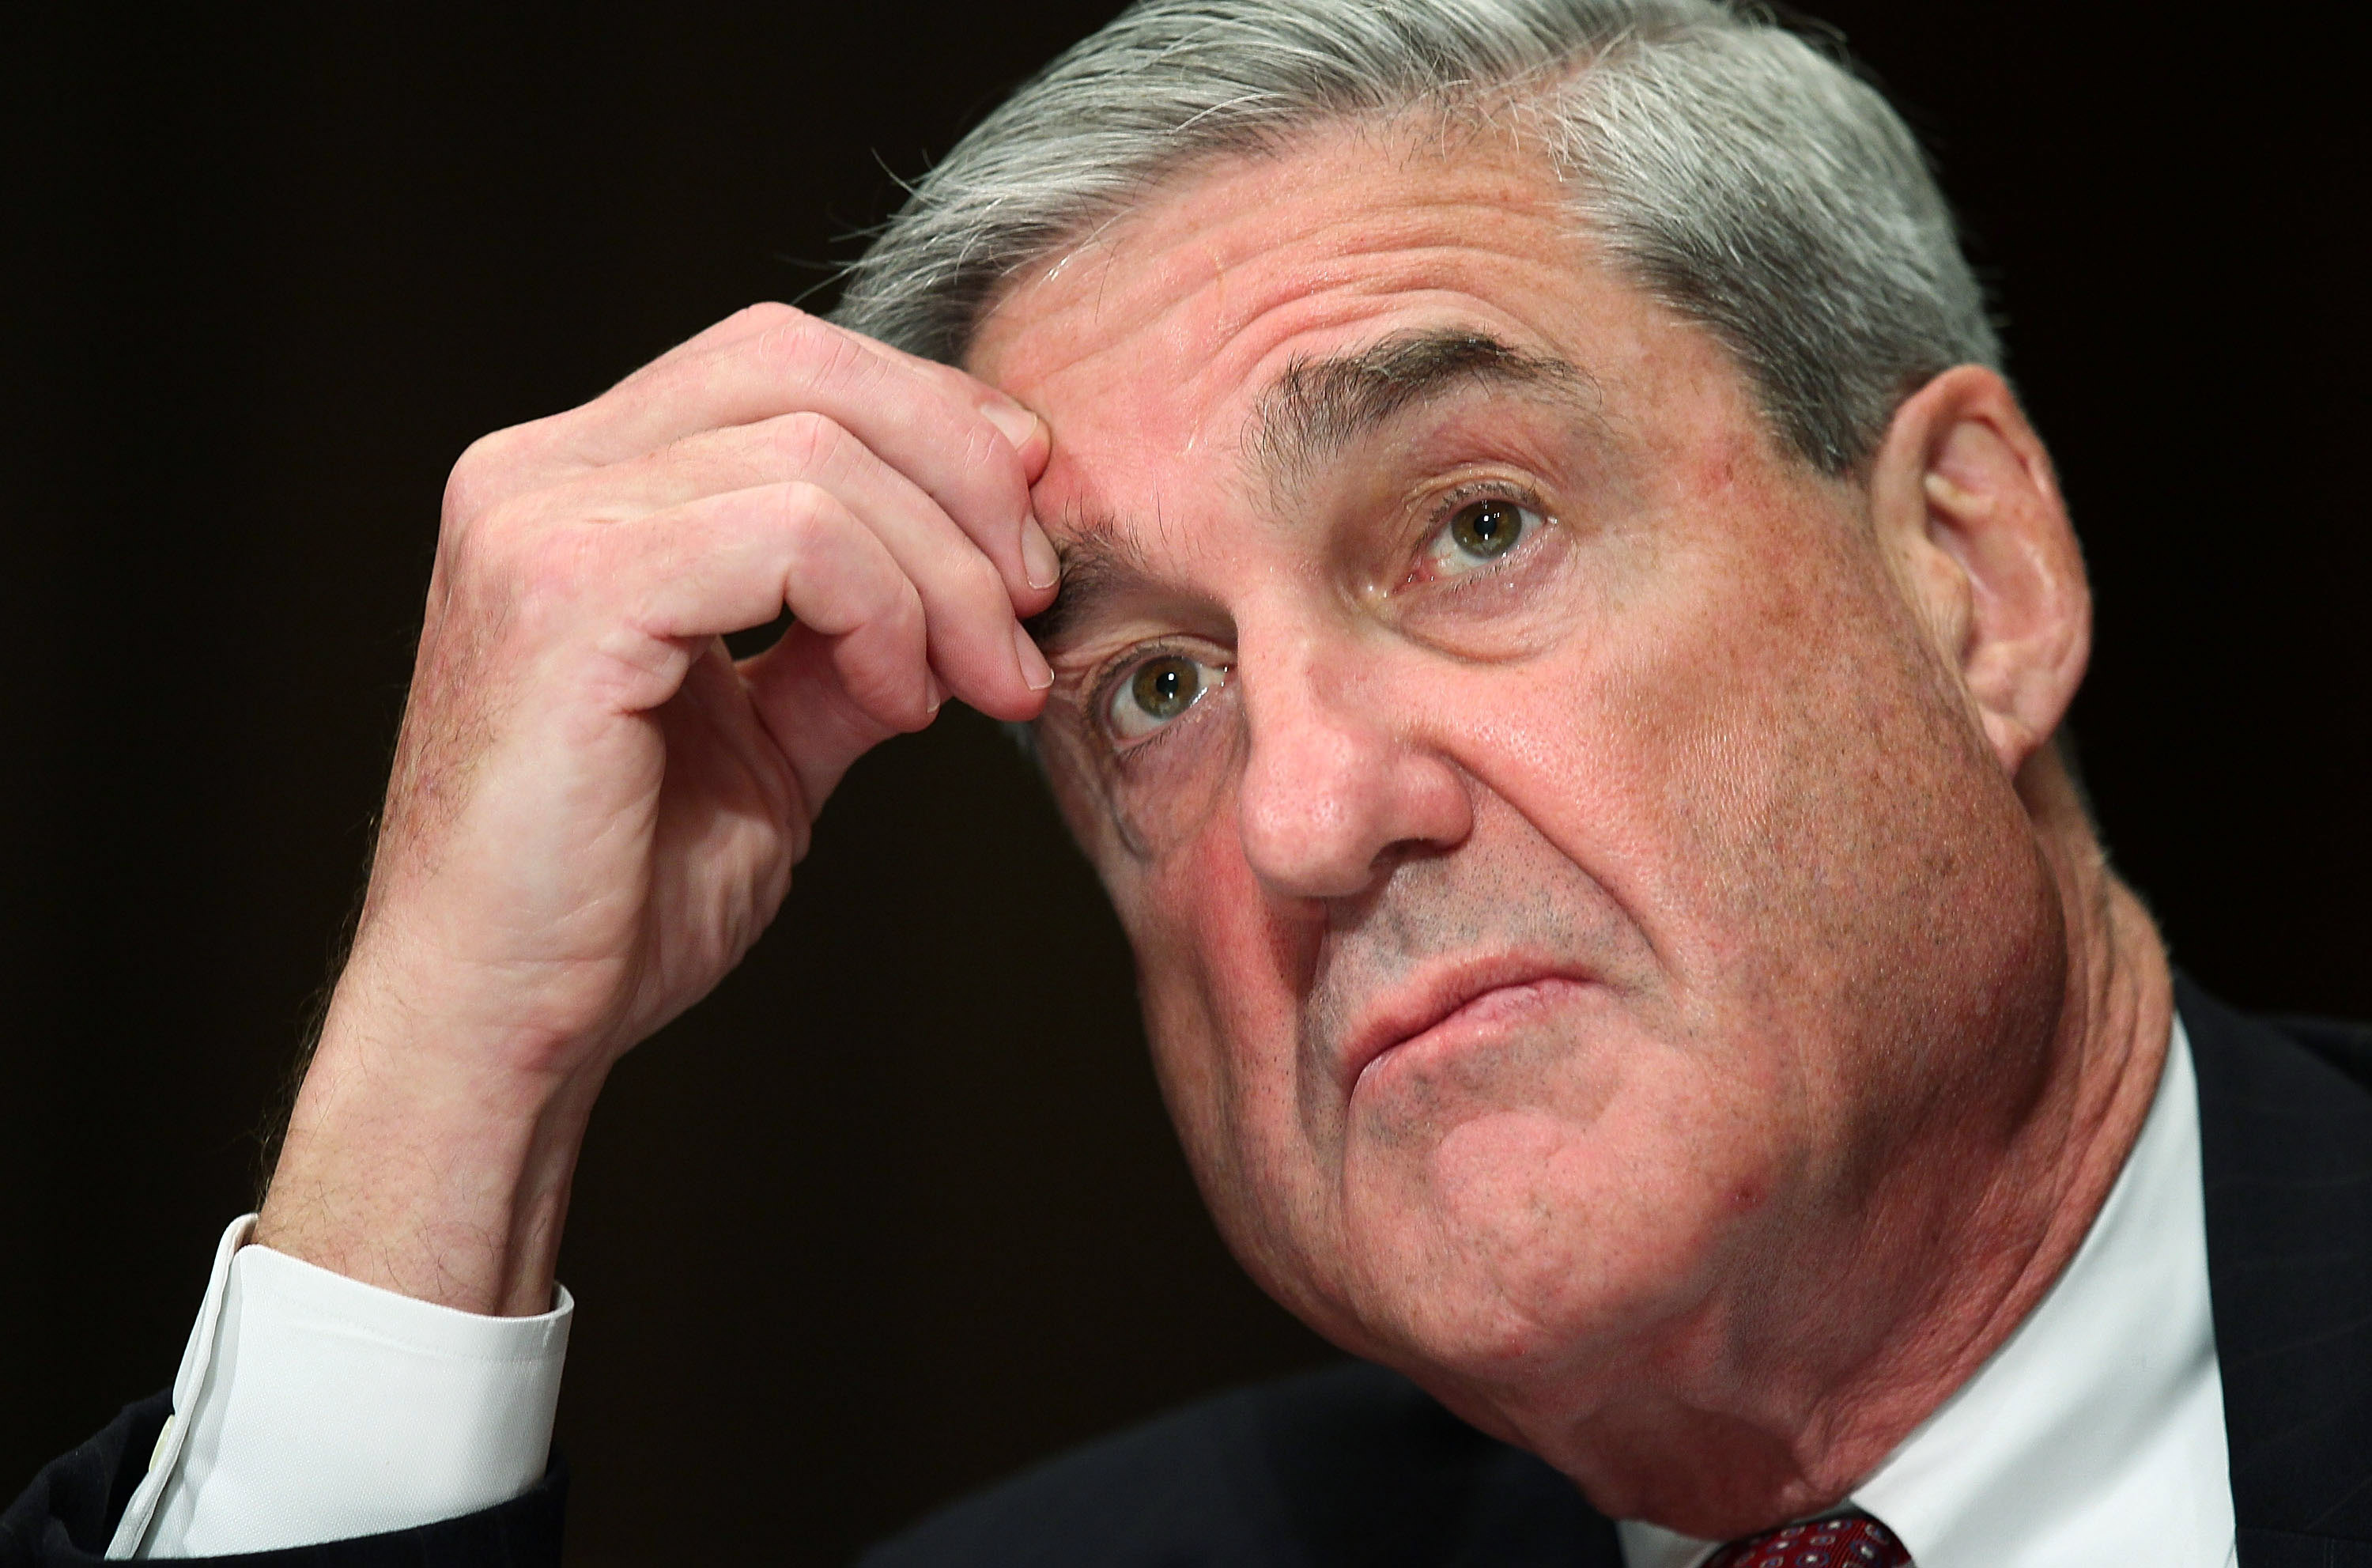 Some Mueller team members aren't happy with Barr's description of their findings